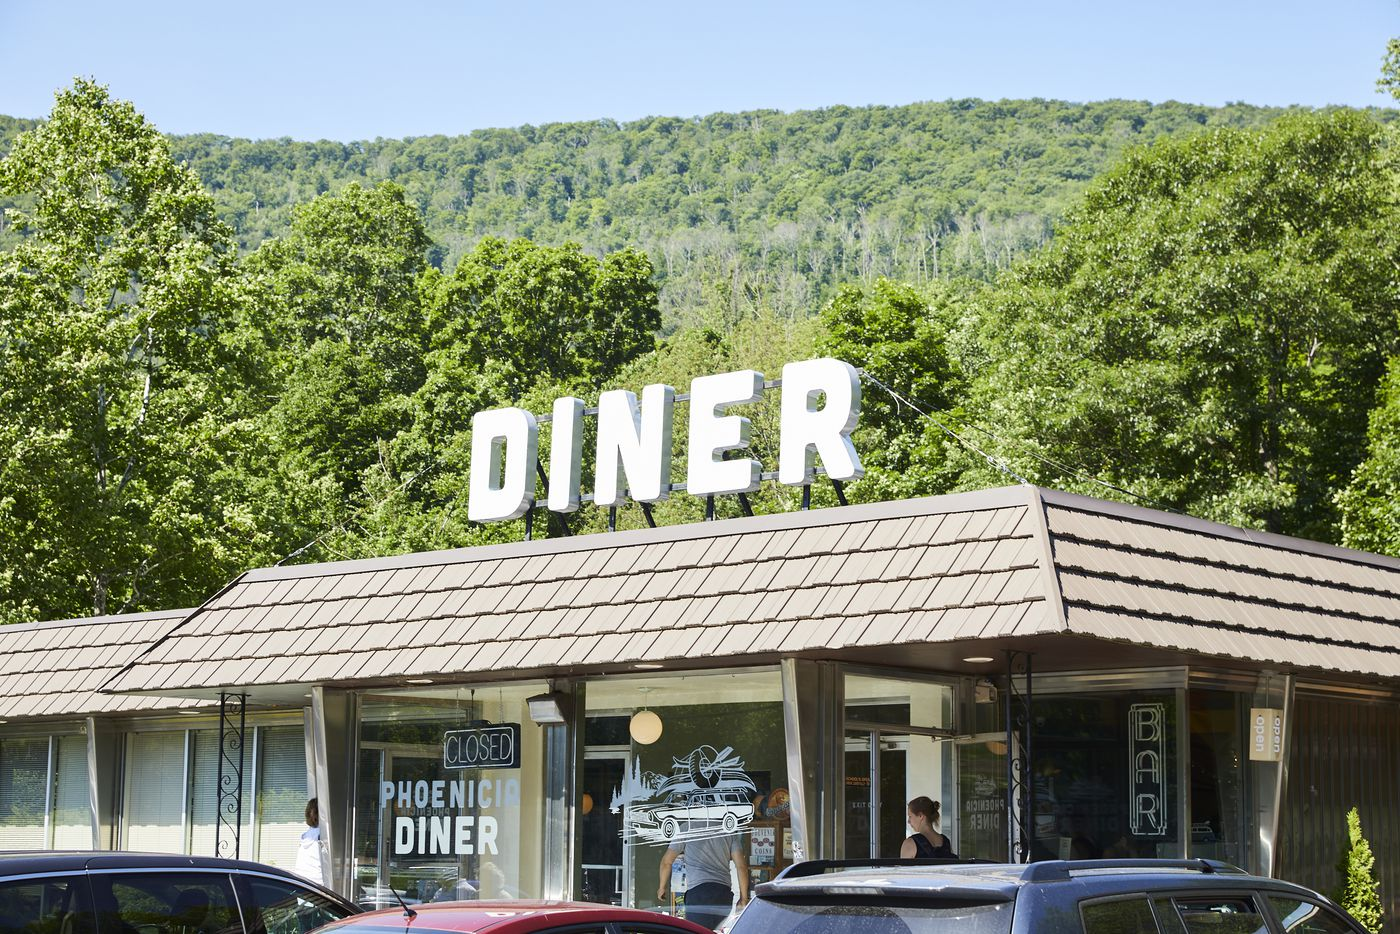 The best small towns to visit in the Hudson Valley and